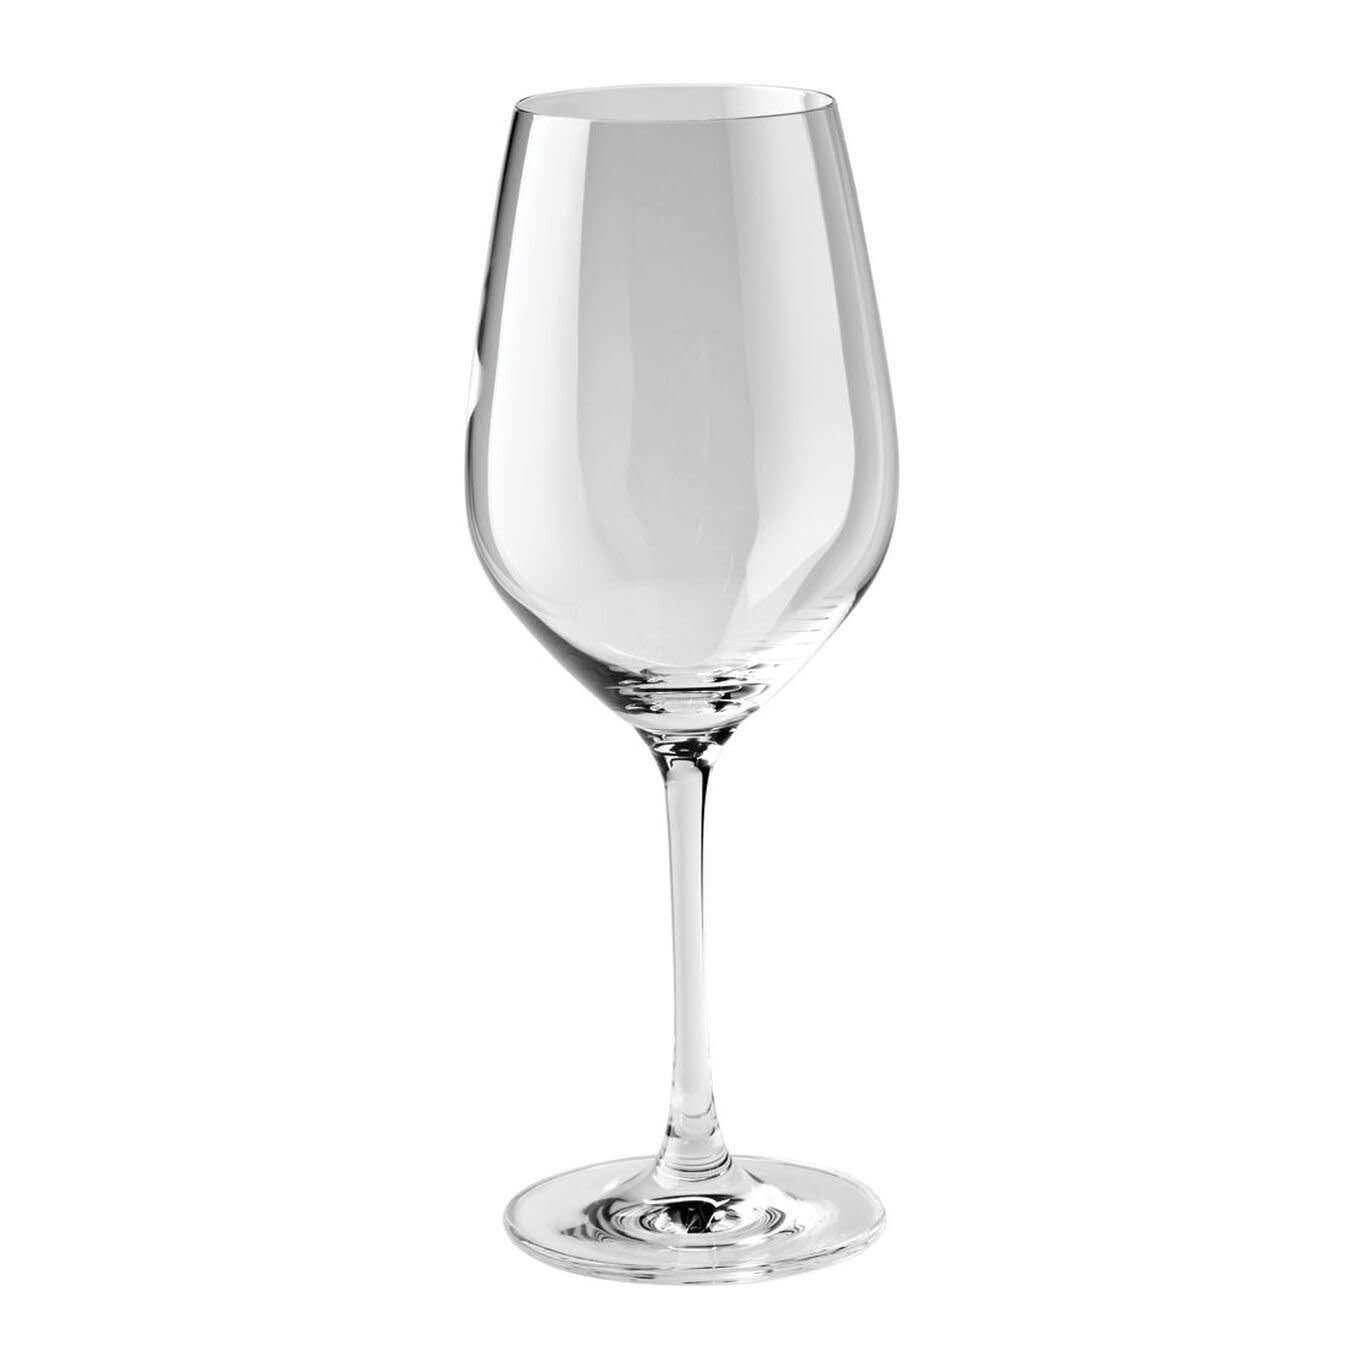 Zwilling J.A. Henckels Predicat S/6 Burgundy Wine Glasses 404ml /13.6oz